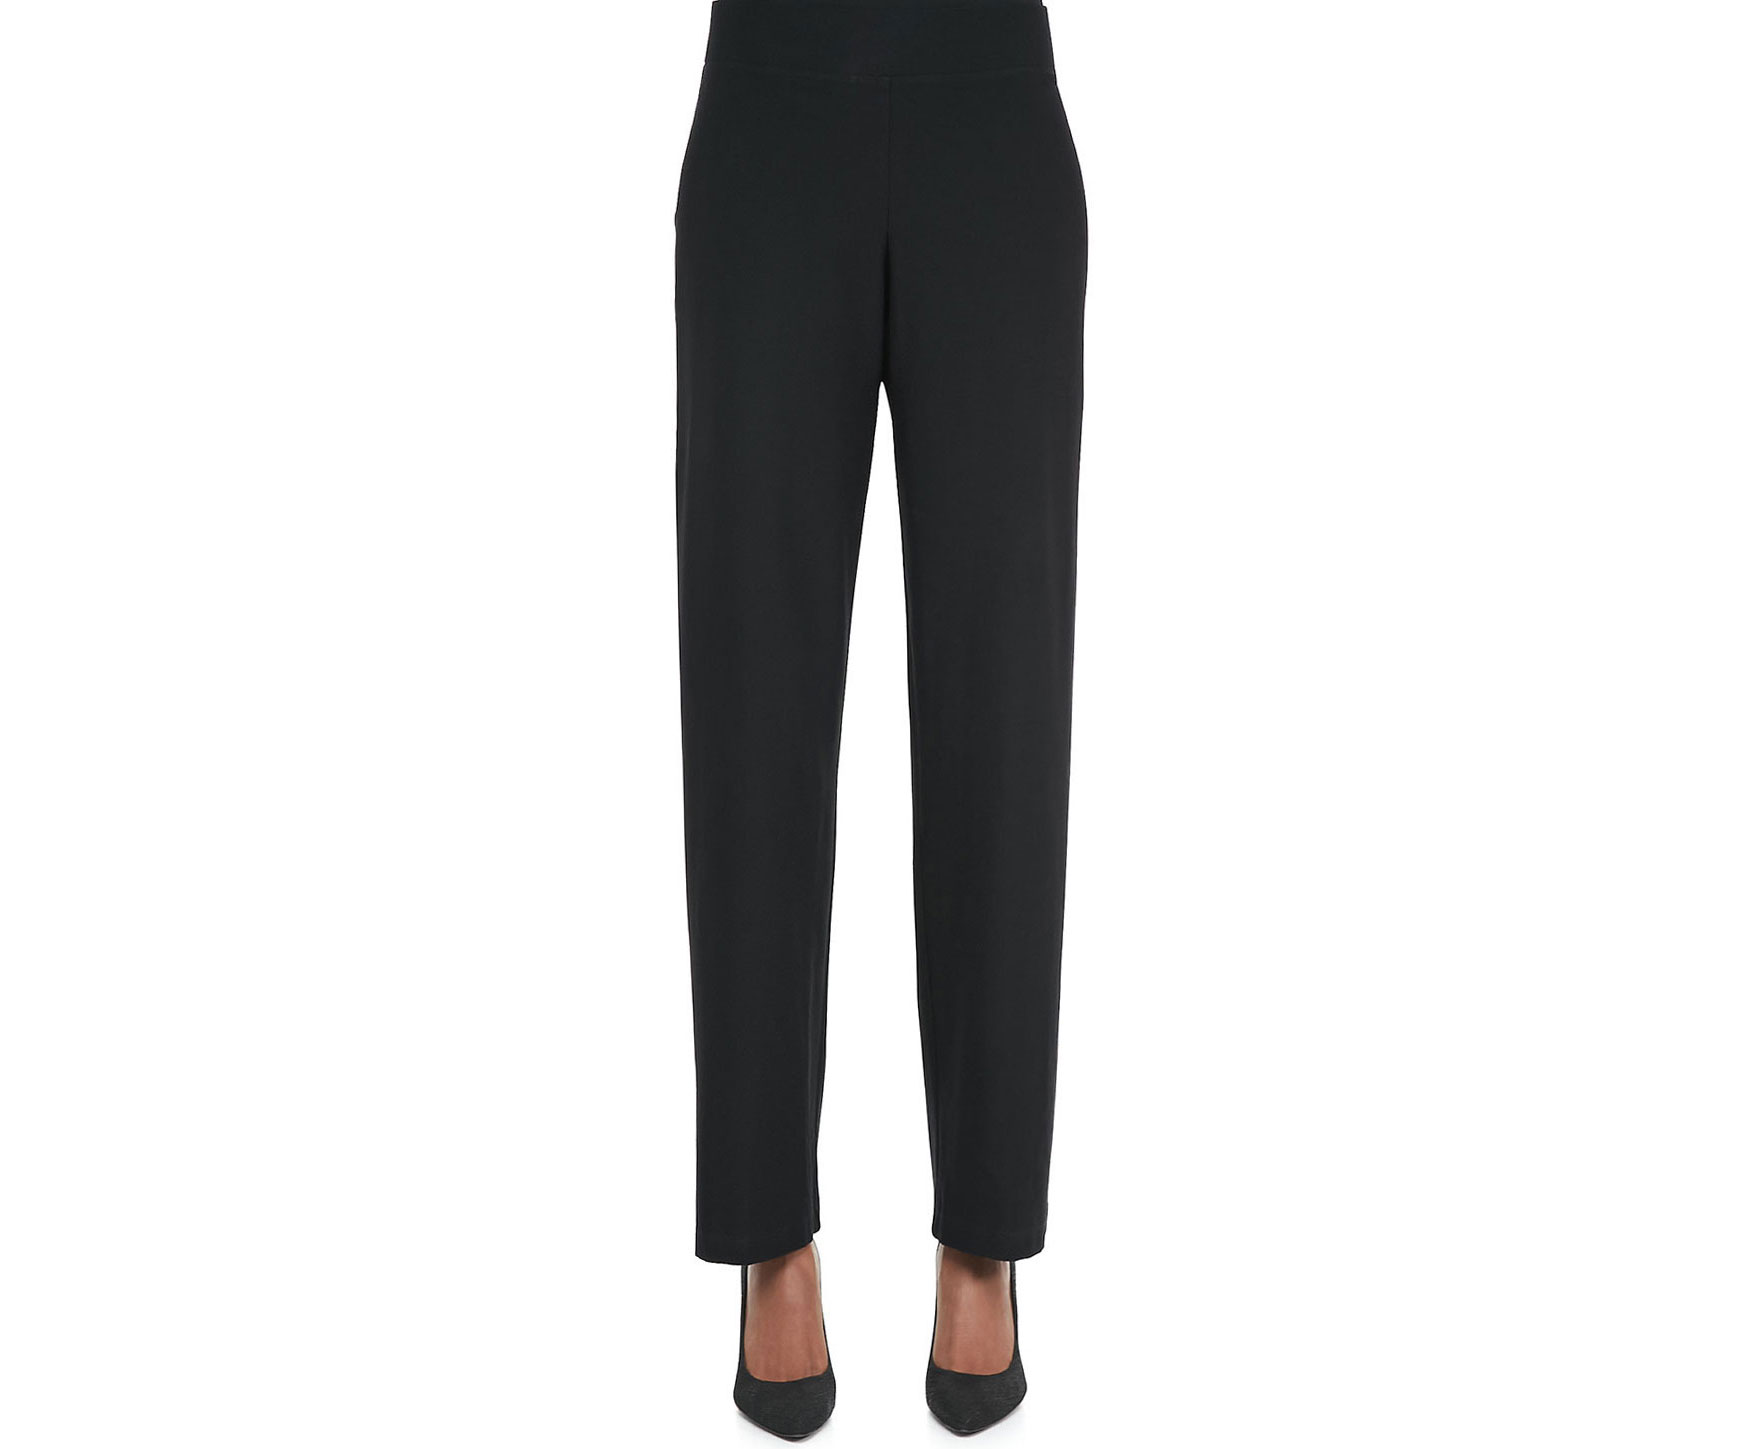 Eileen Fisher black crepe straight-leg pants